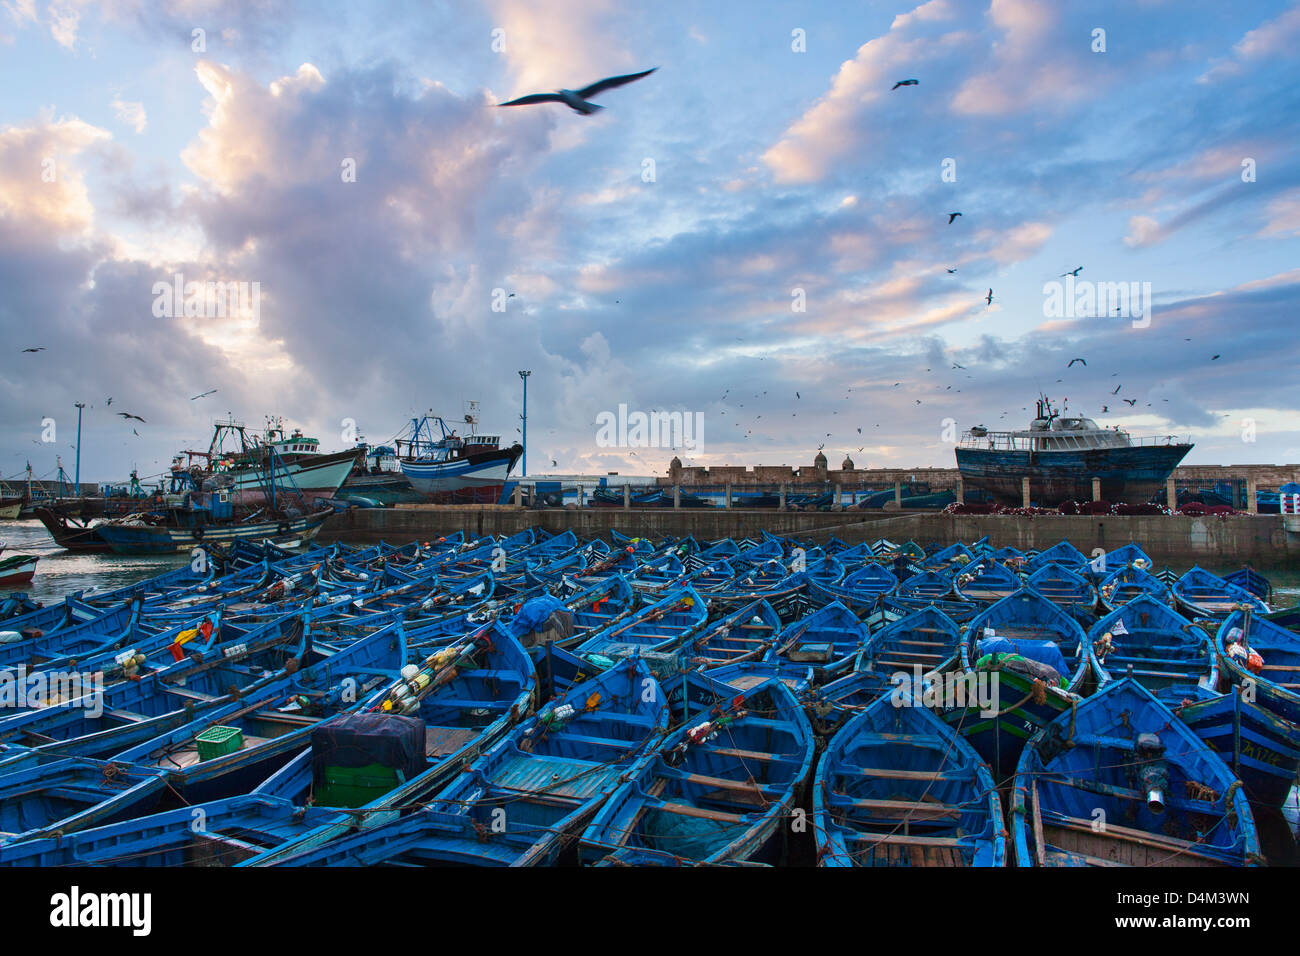 Birds flying over boats in urban harbor - Stock Image